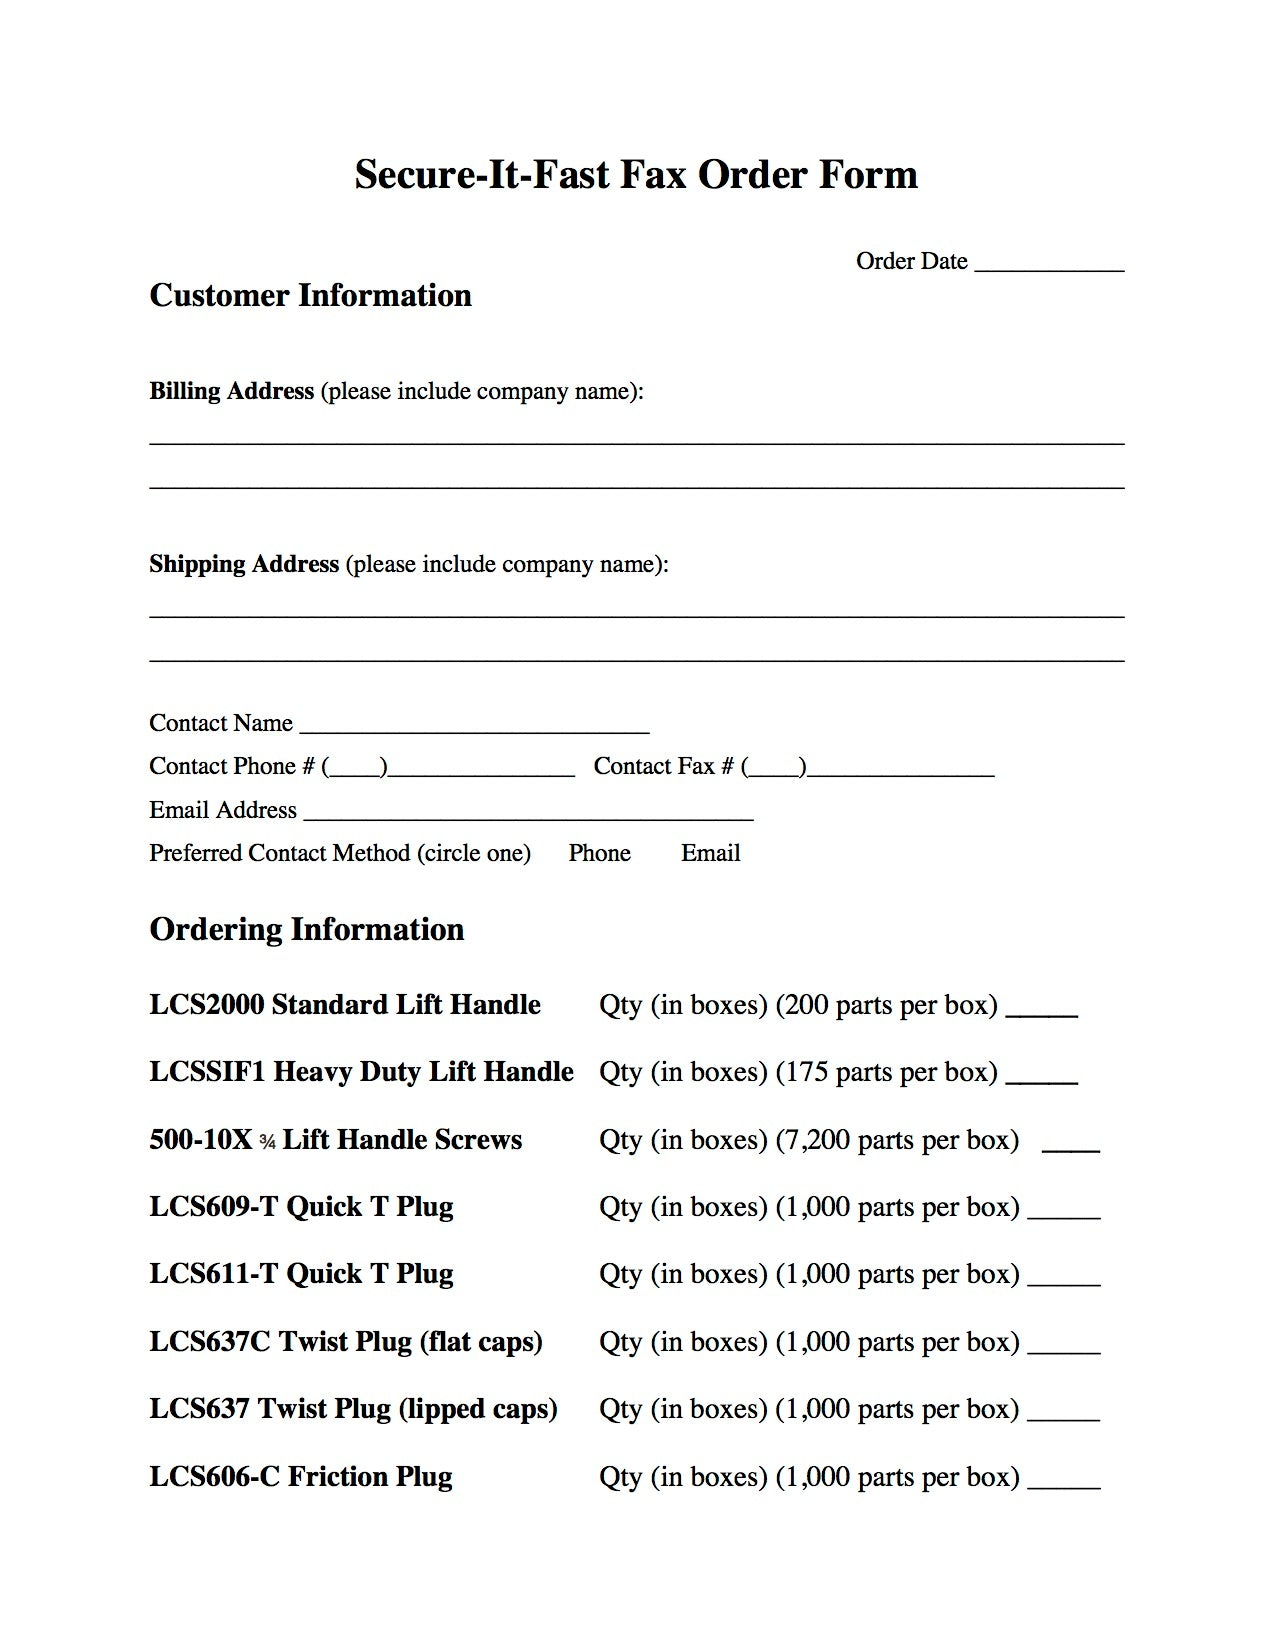 fax form secure it fast